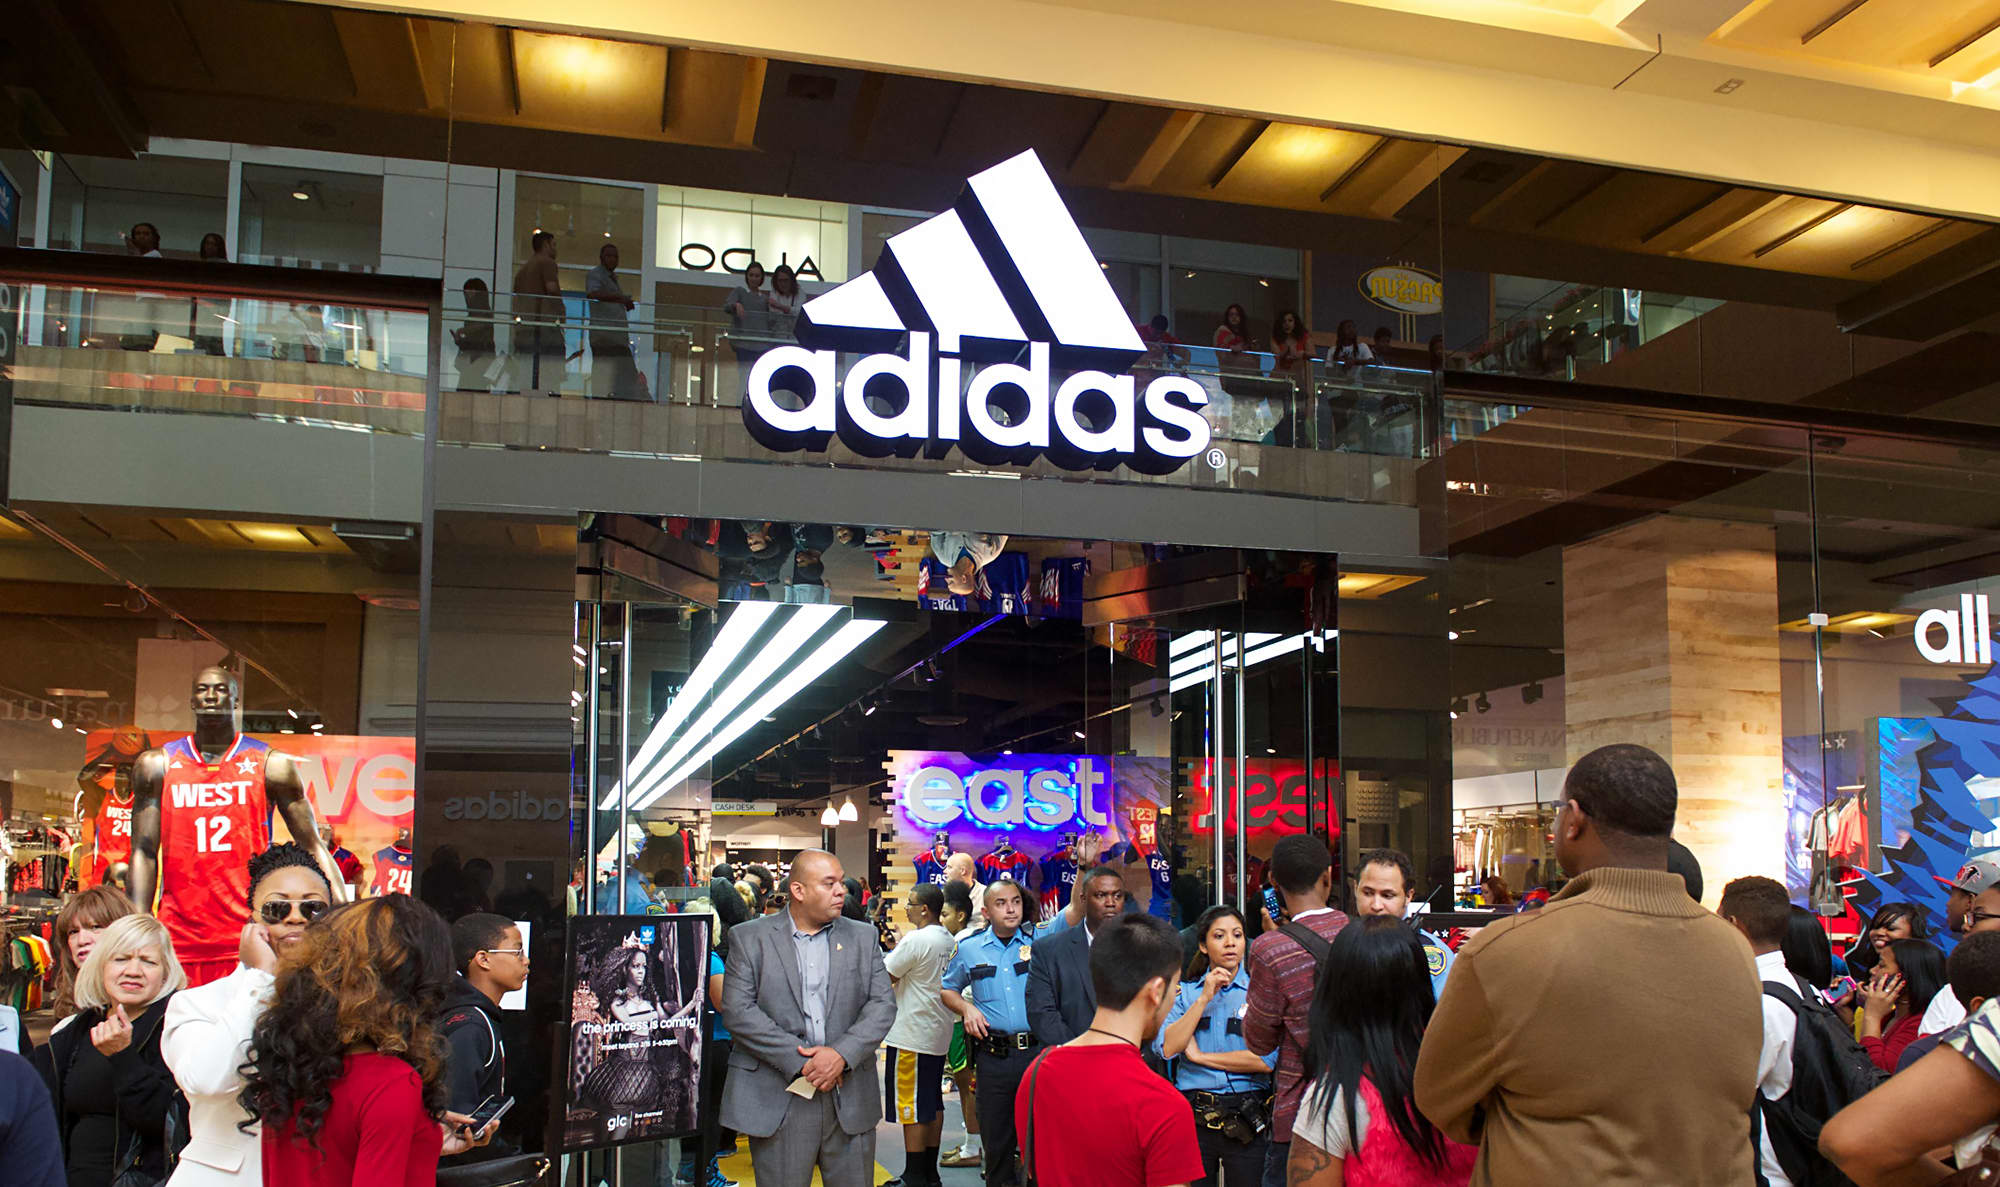 Adidas and Nike supply tactics are an abuse of market dominance, British retail giant says